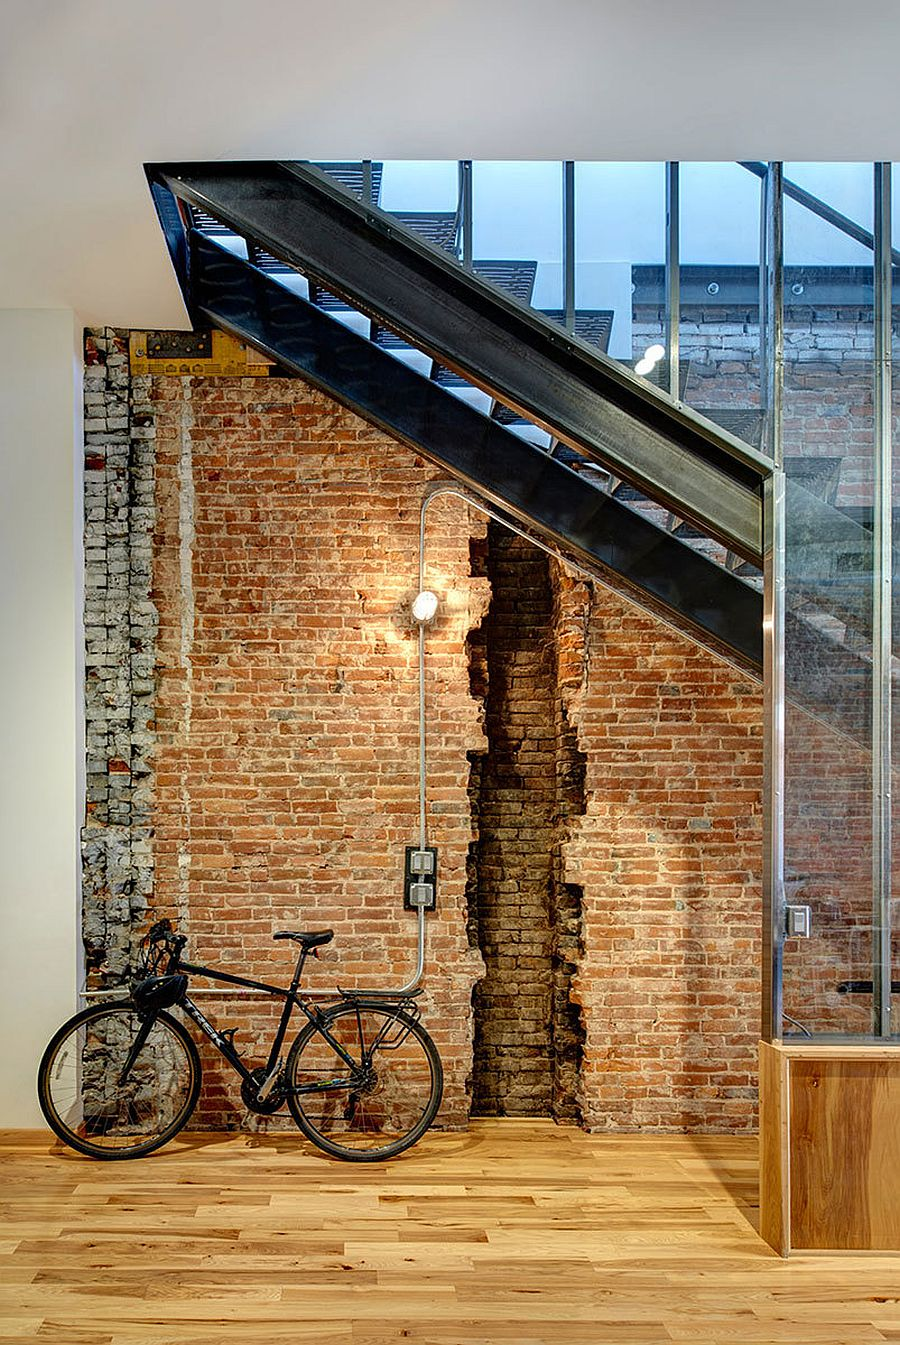 Century-old commercial building turned into modern commercial and office space